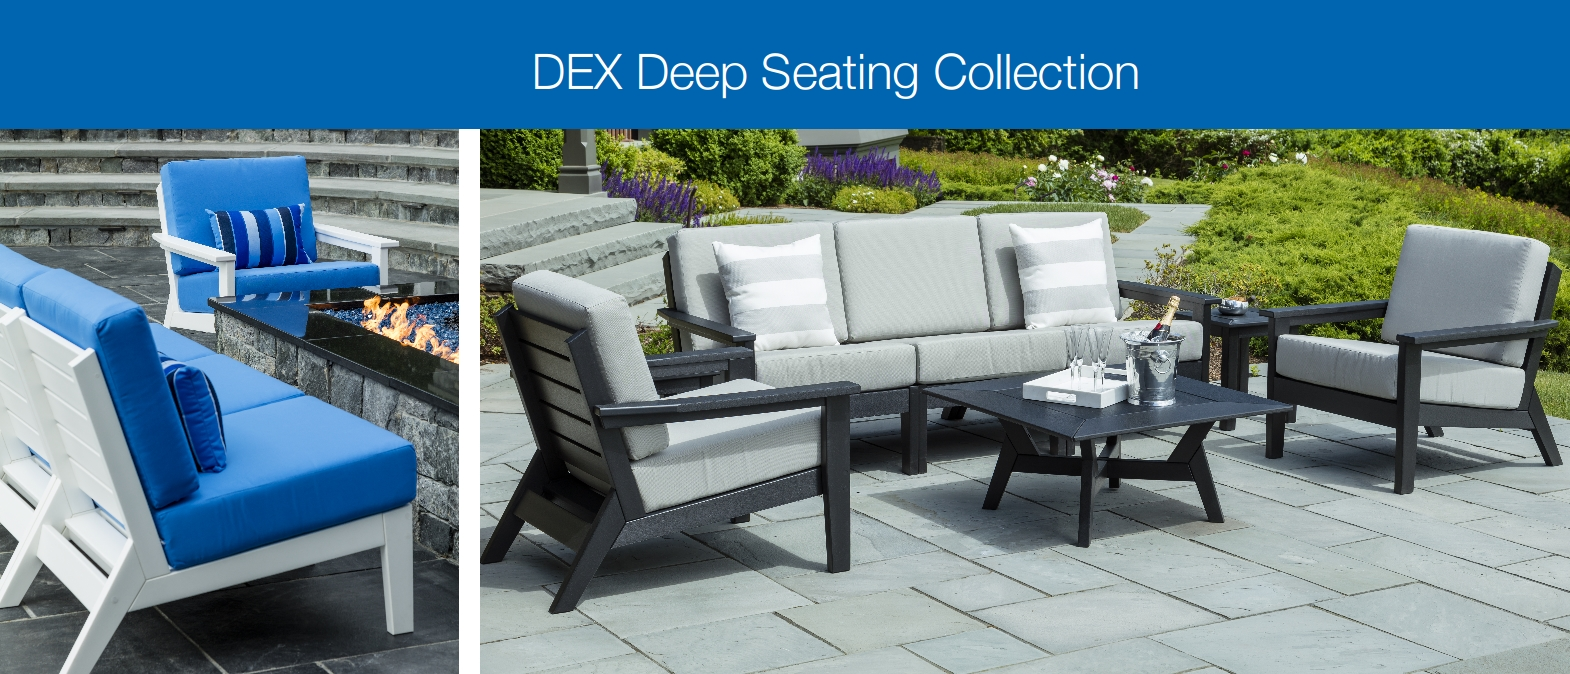 easide casual NEW 2017 dex deep seating collection